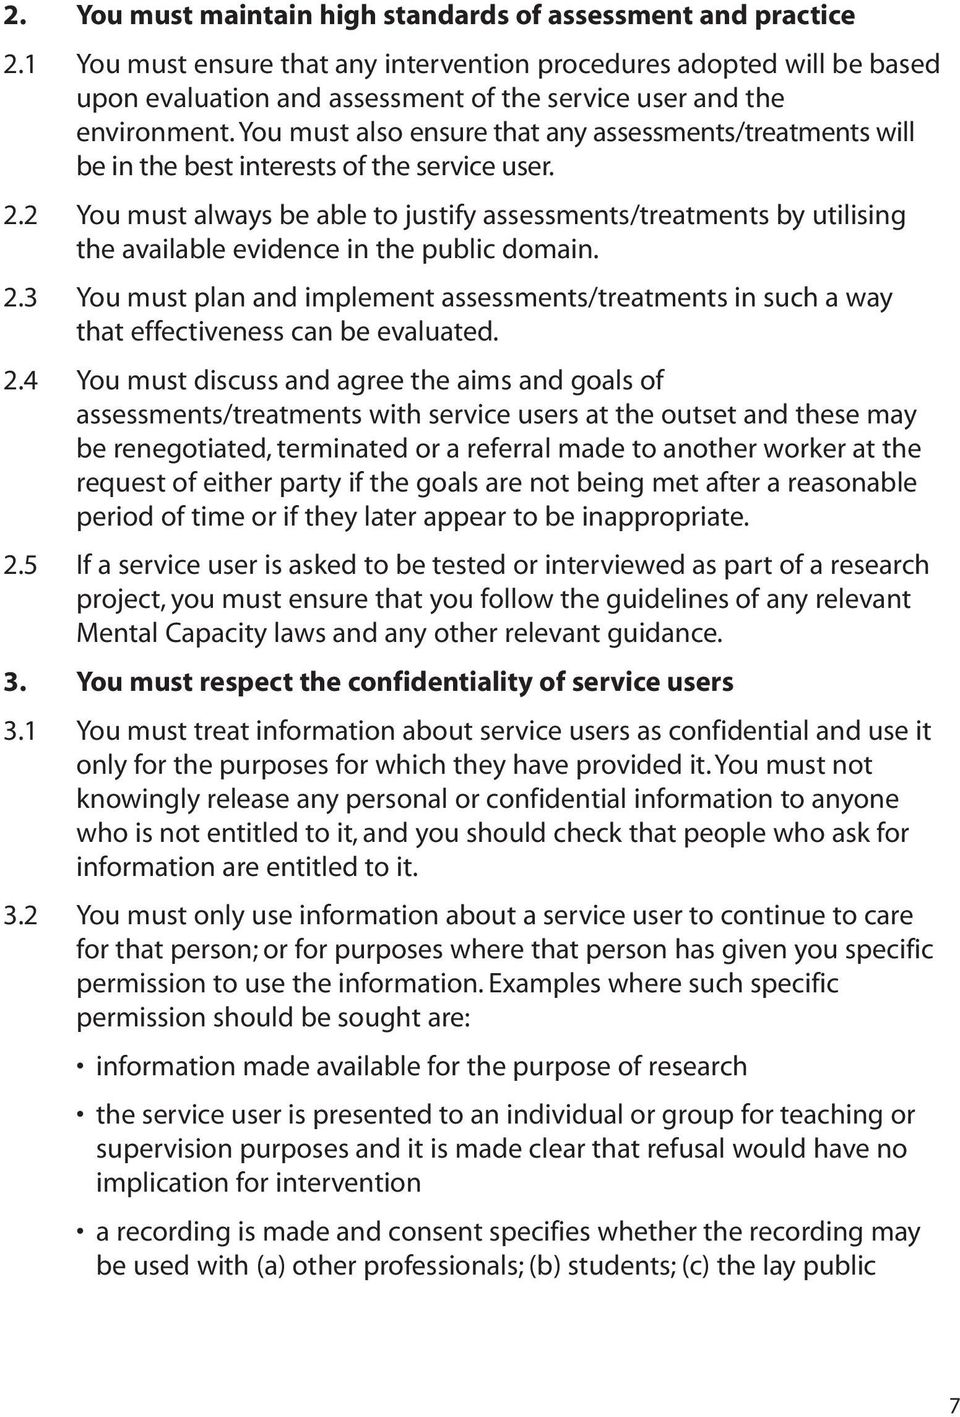 You must also ensure that any assessments/treatments will be in the best interests of the service user. 2.